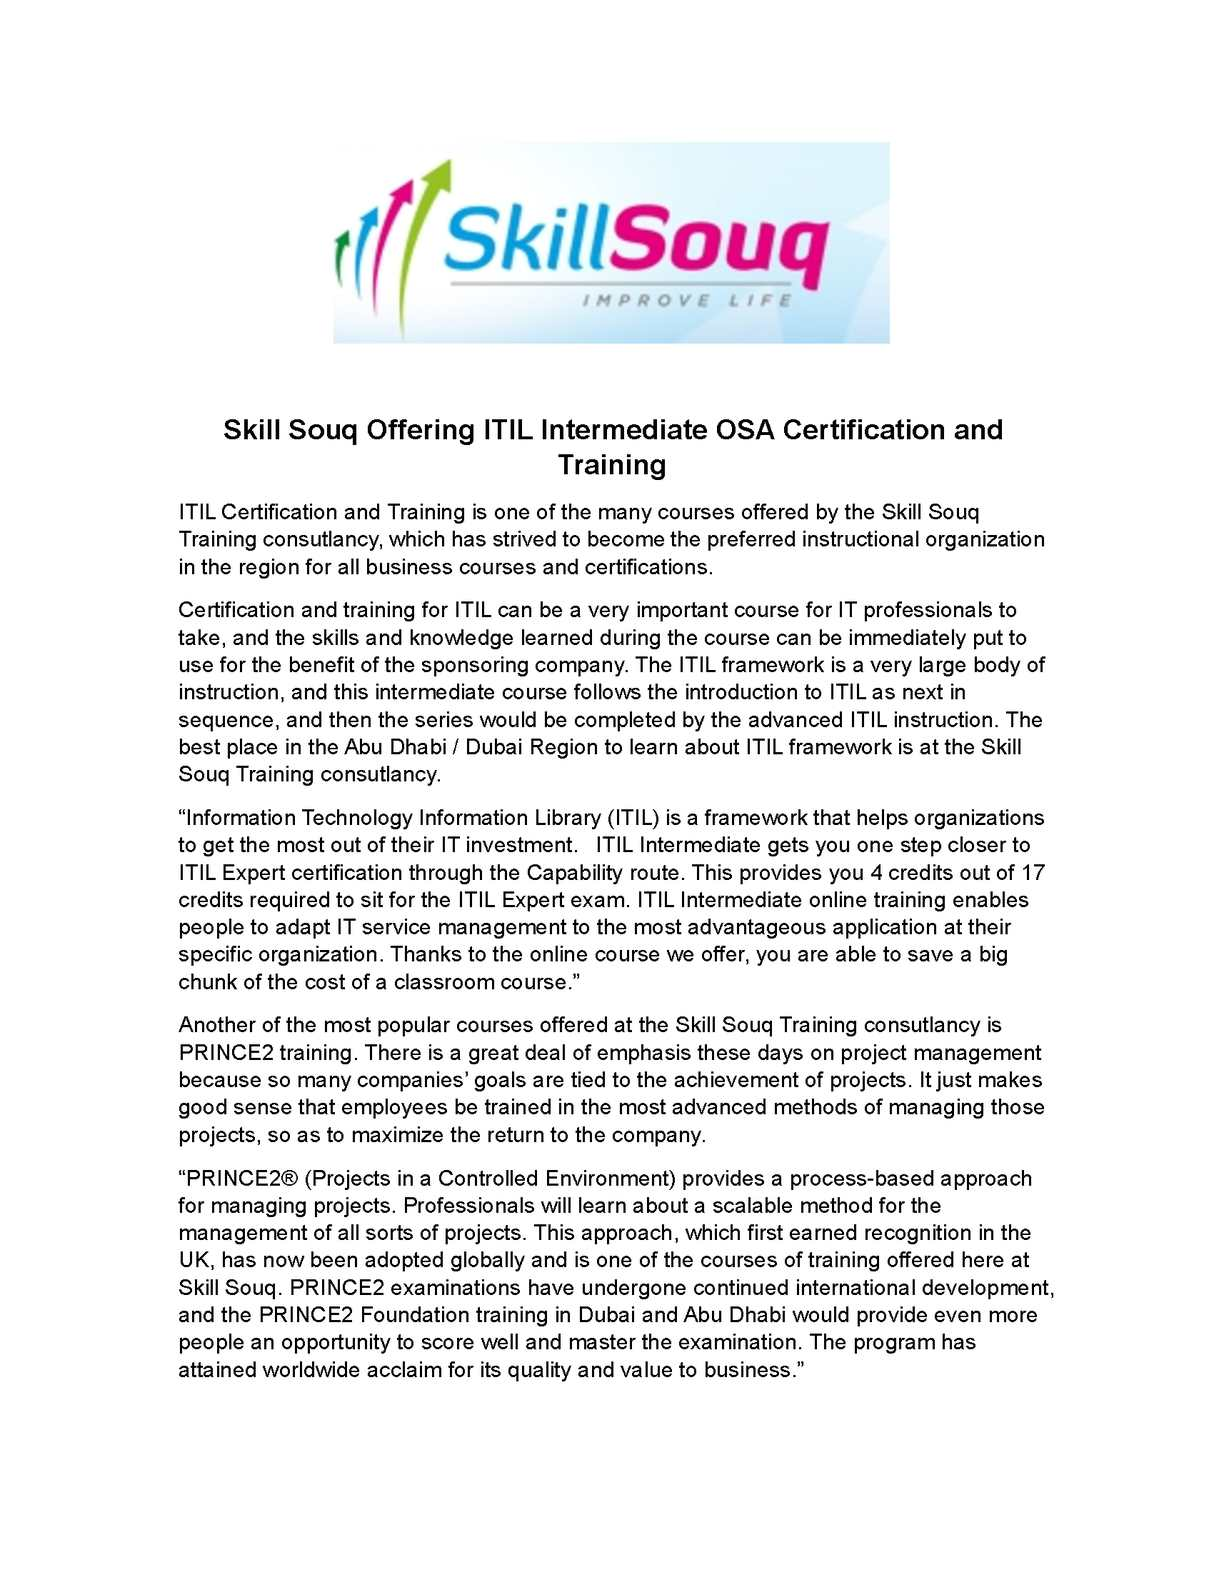 Calamo Skill Souq Offering Itil Intermediate Osa Certification